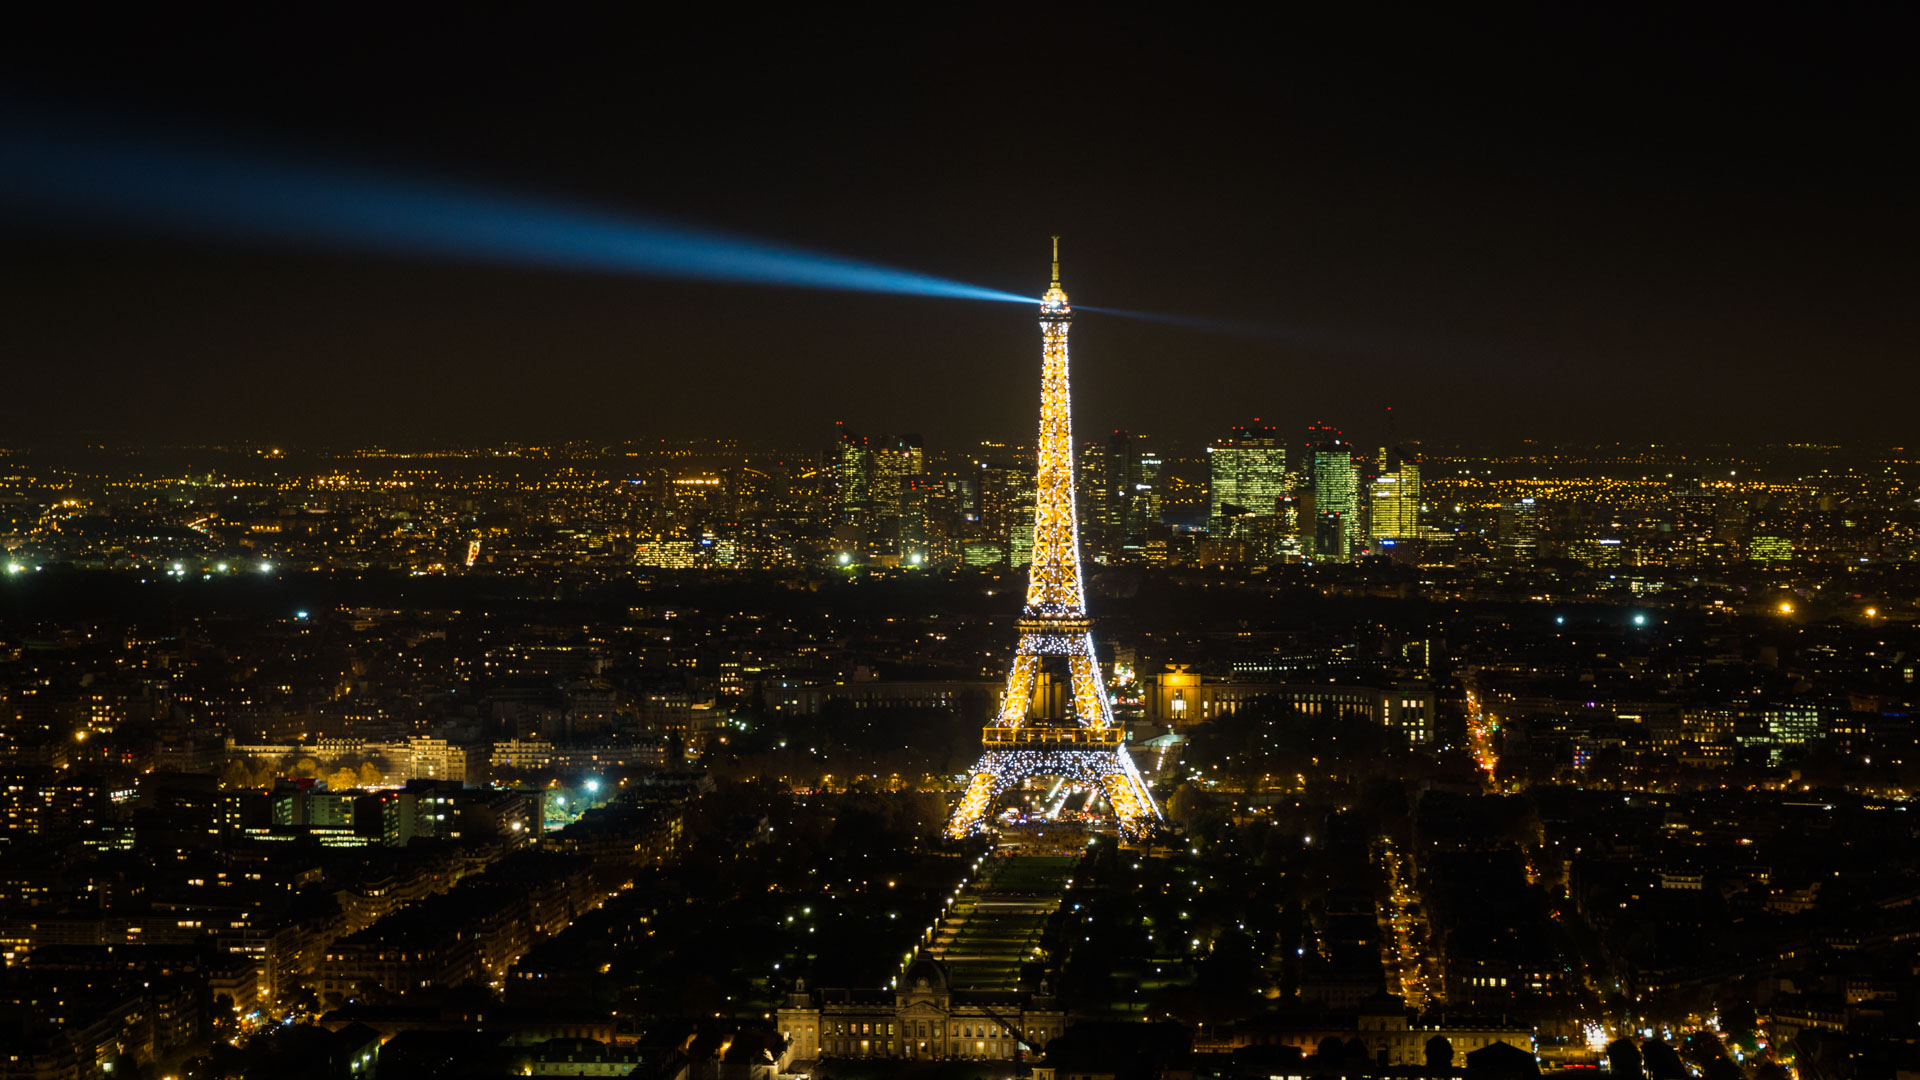 Paris - Montparnasse Tower | View to the Eiffel Tower